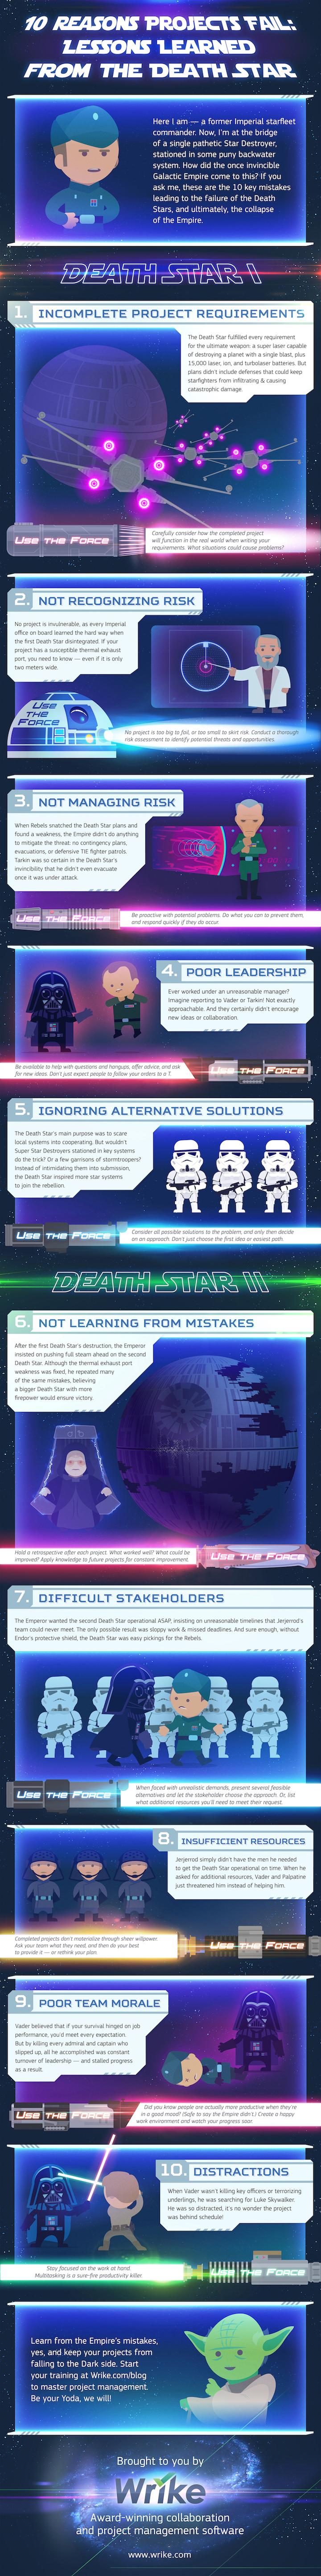 10 Reasons the Death Star Failed #infographic